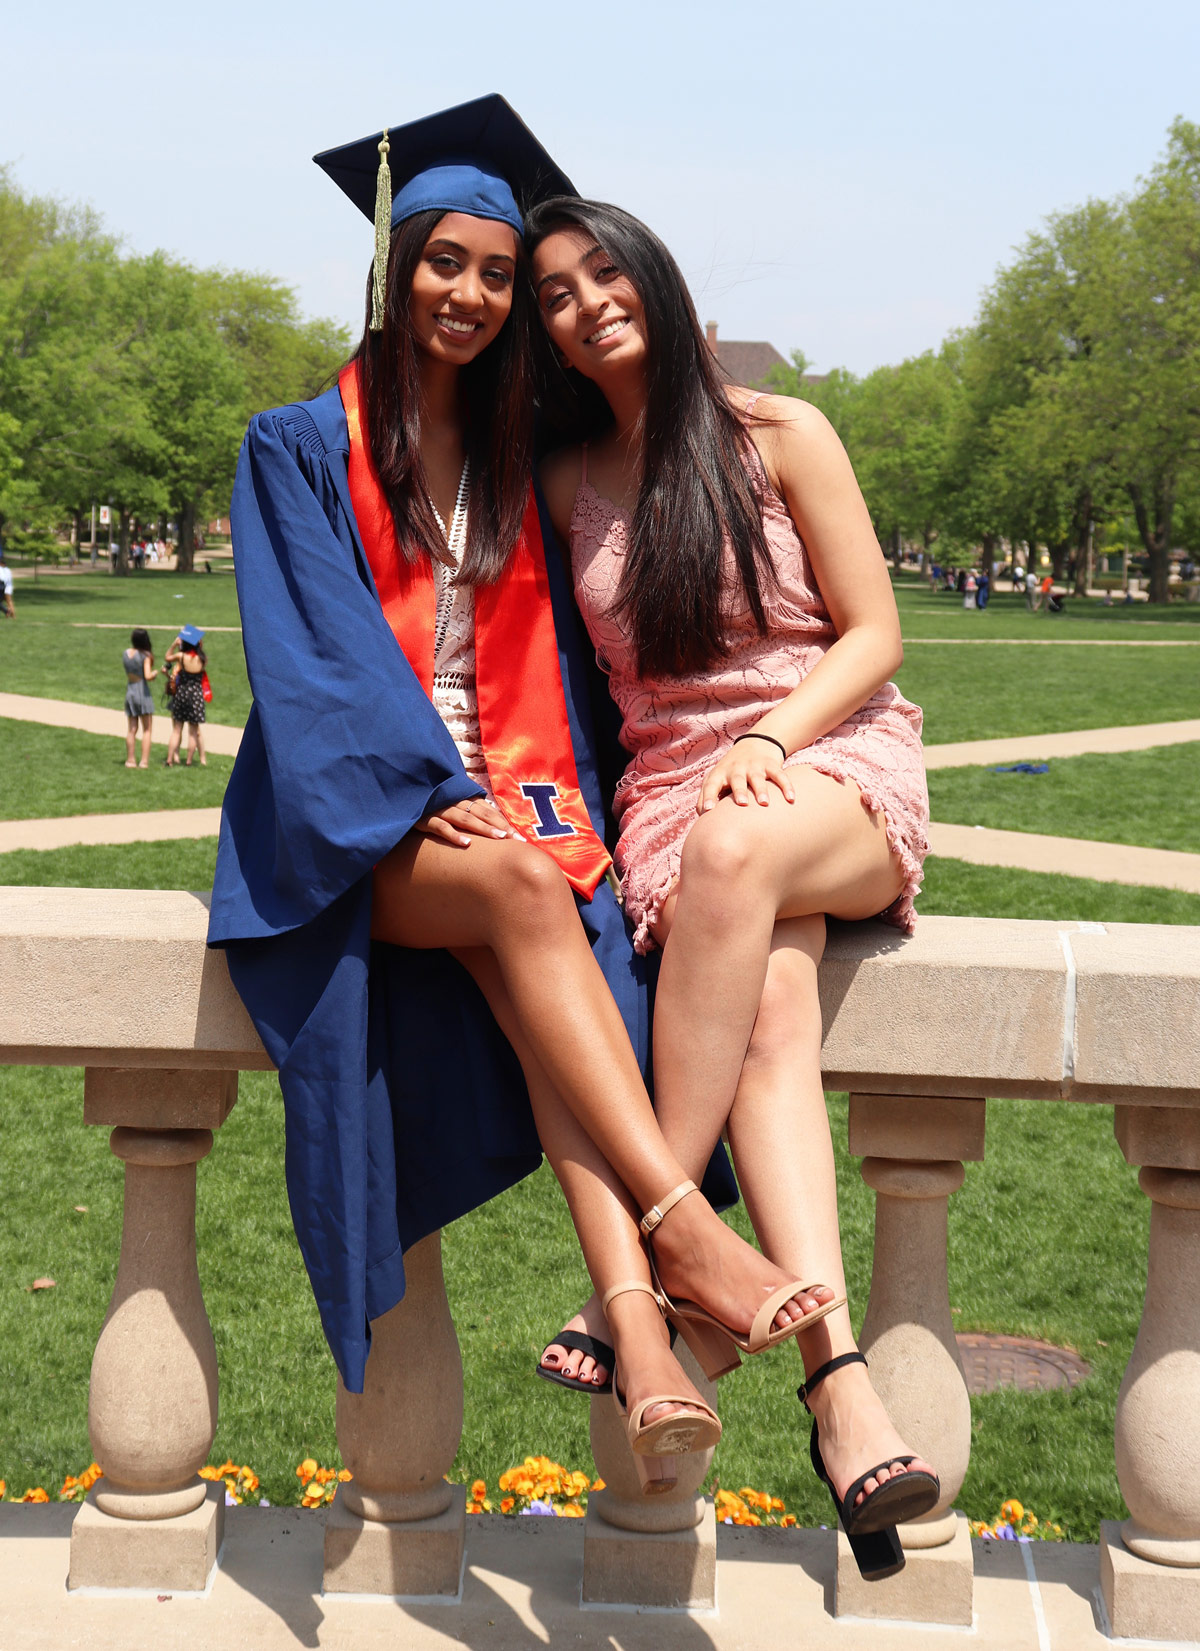 Swathi posing with her sister in graduation cap and gown